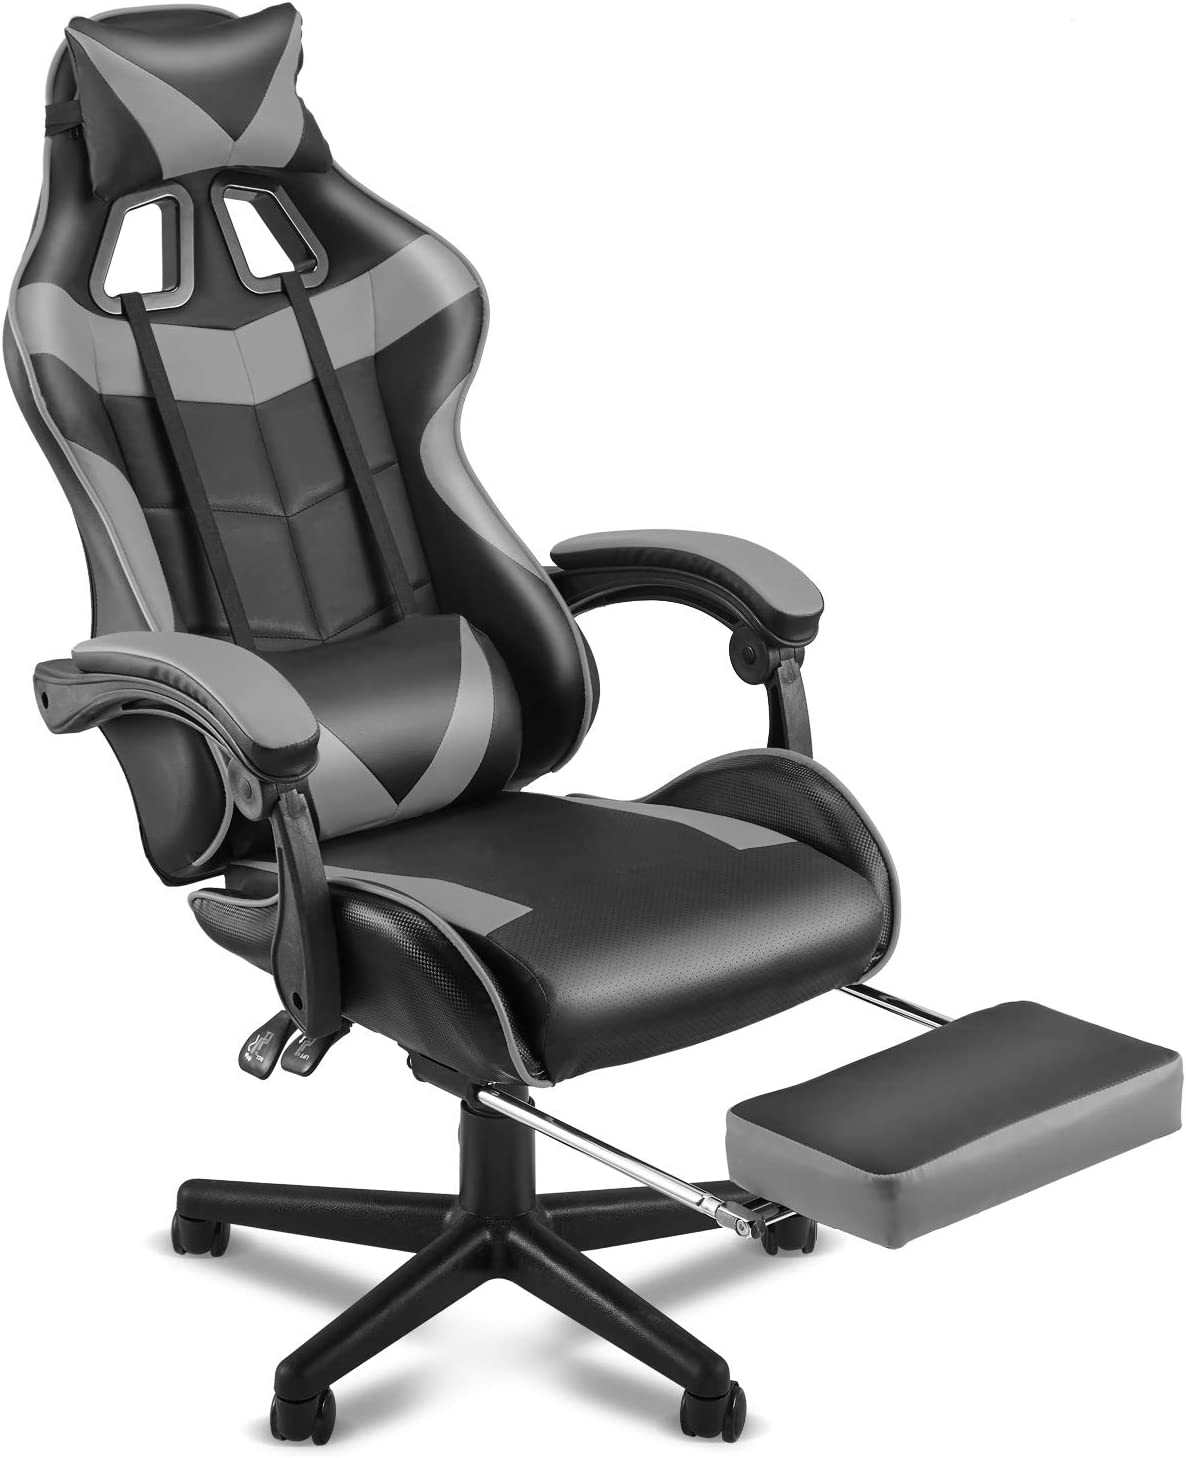 Amazon Com Soontrans Ergonomic Gaming Chair Office Computer Game Chair E Sports Chair Gaming Chair Racing Style With Adjustable Recliner Headrest Lumbar Pillow And Retractable Footrest Galaxy Grey Kitchen Dining